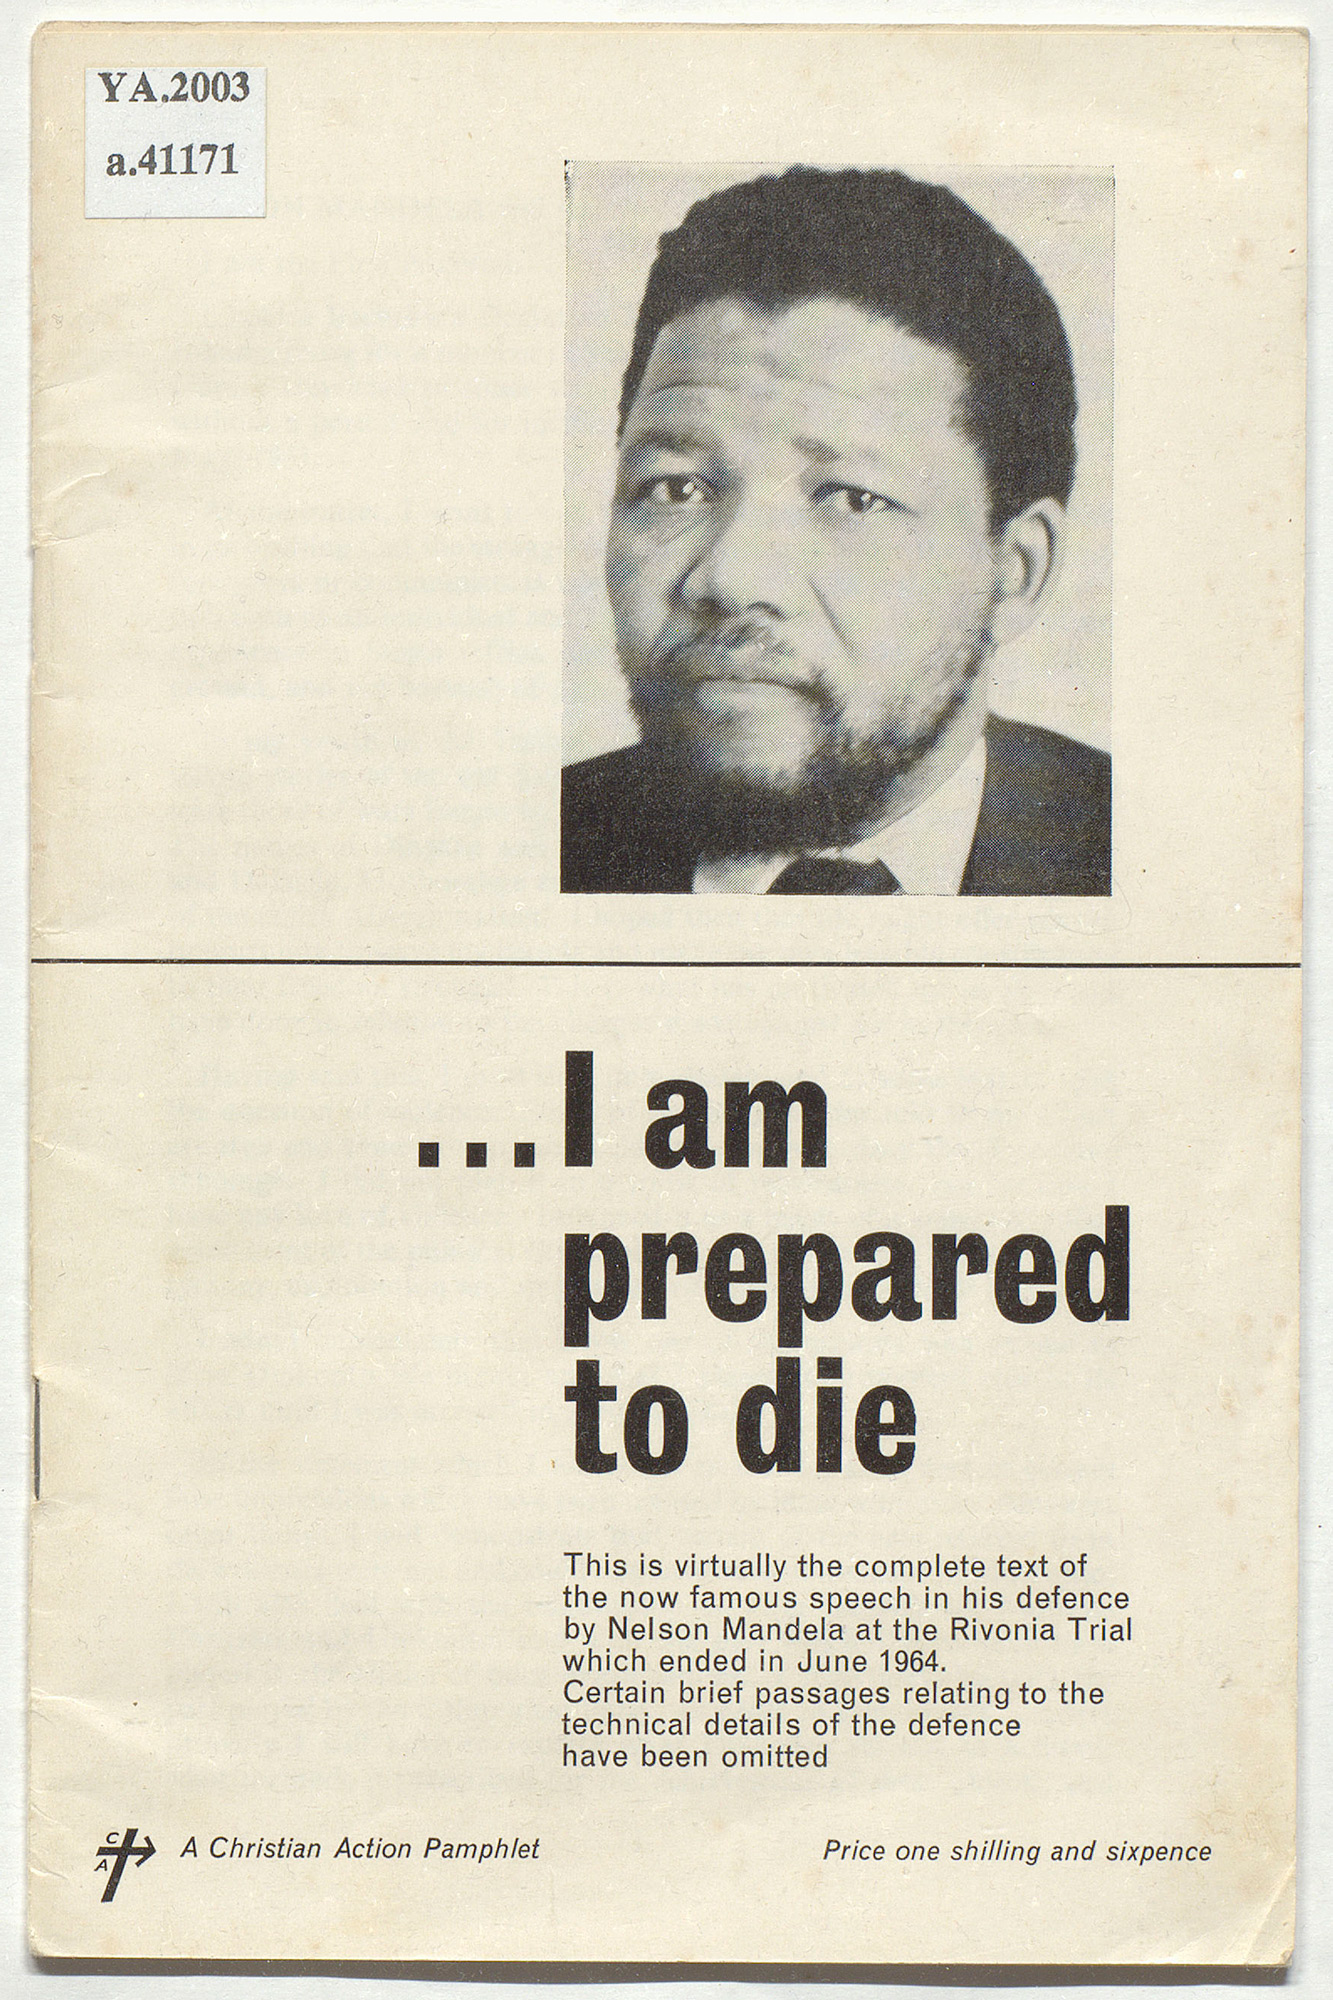 Nelson Mandela's speech 'I am prepared to die'